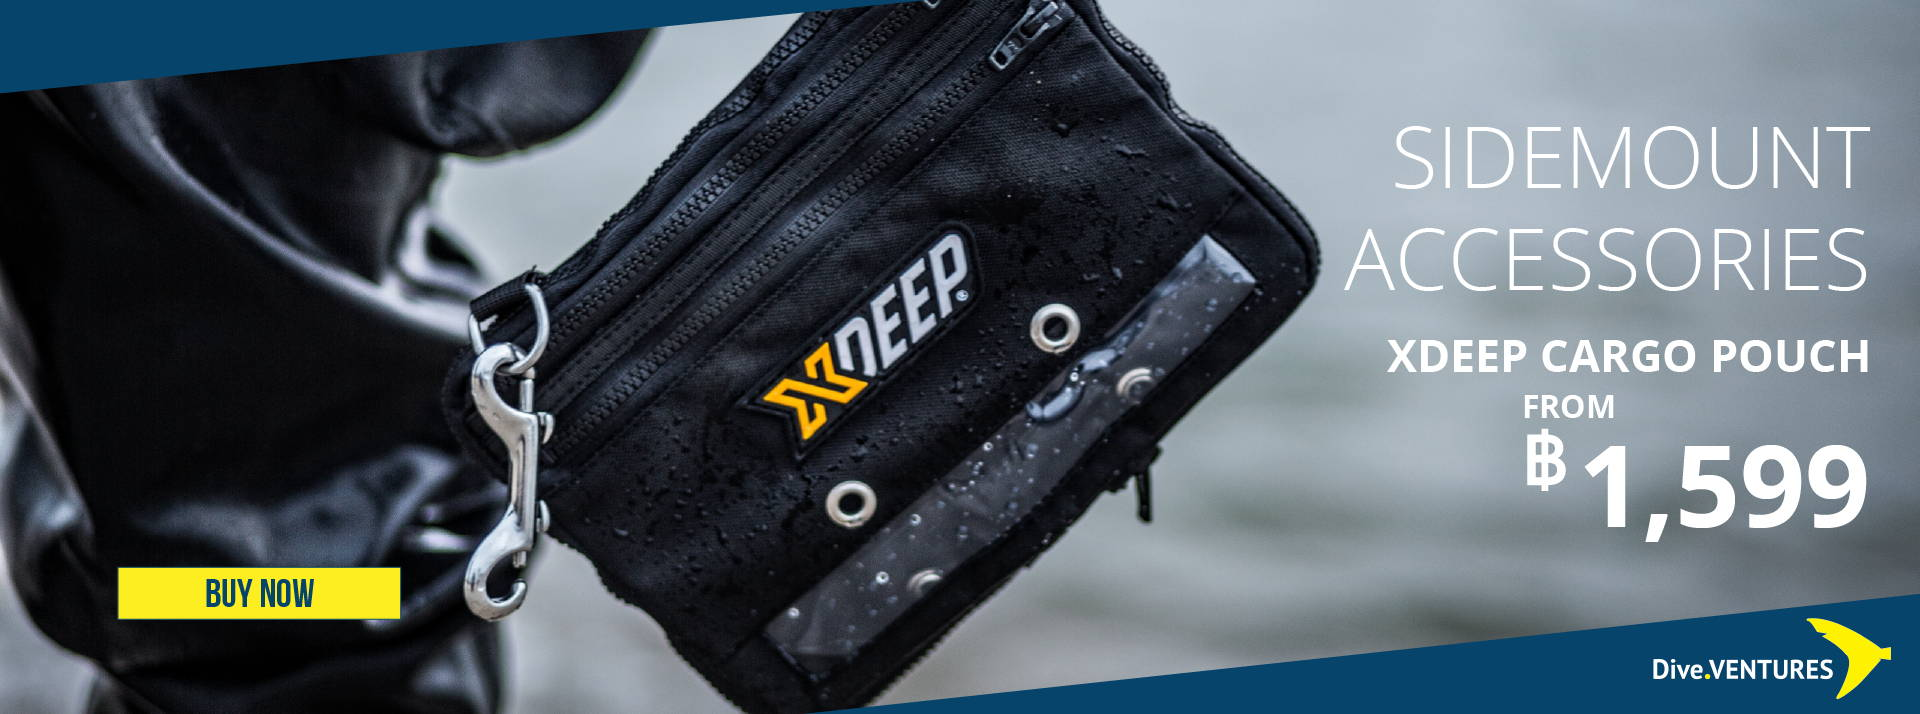 XDeep Cargo Pouch | Dive.VENTURES